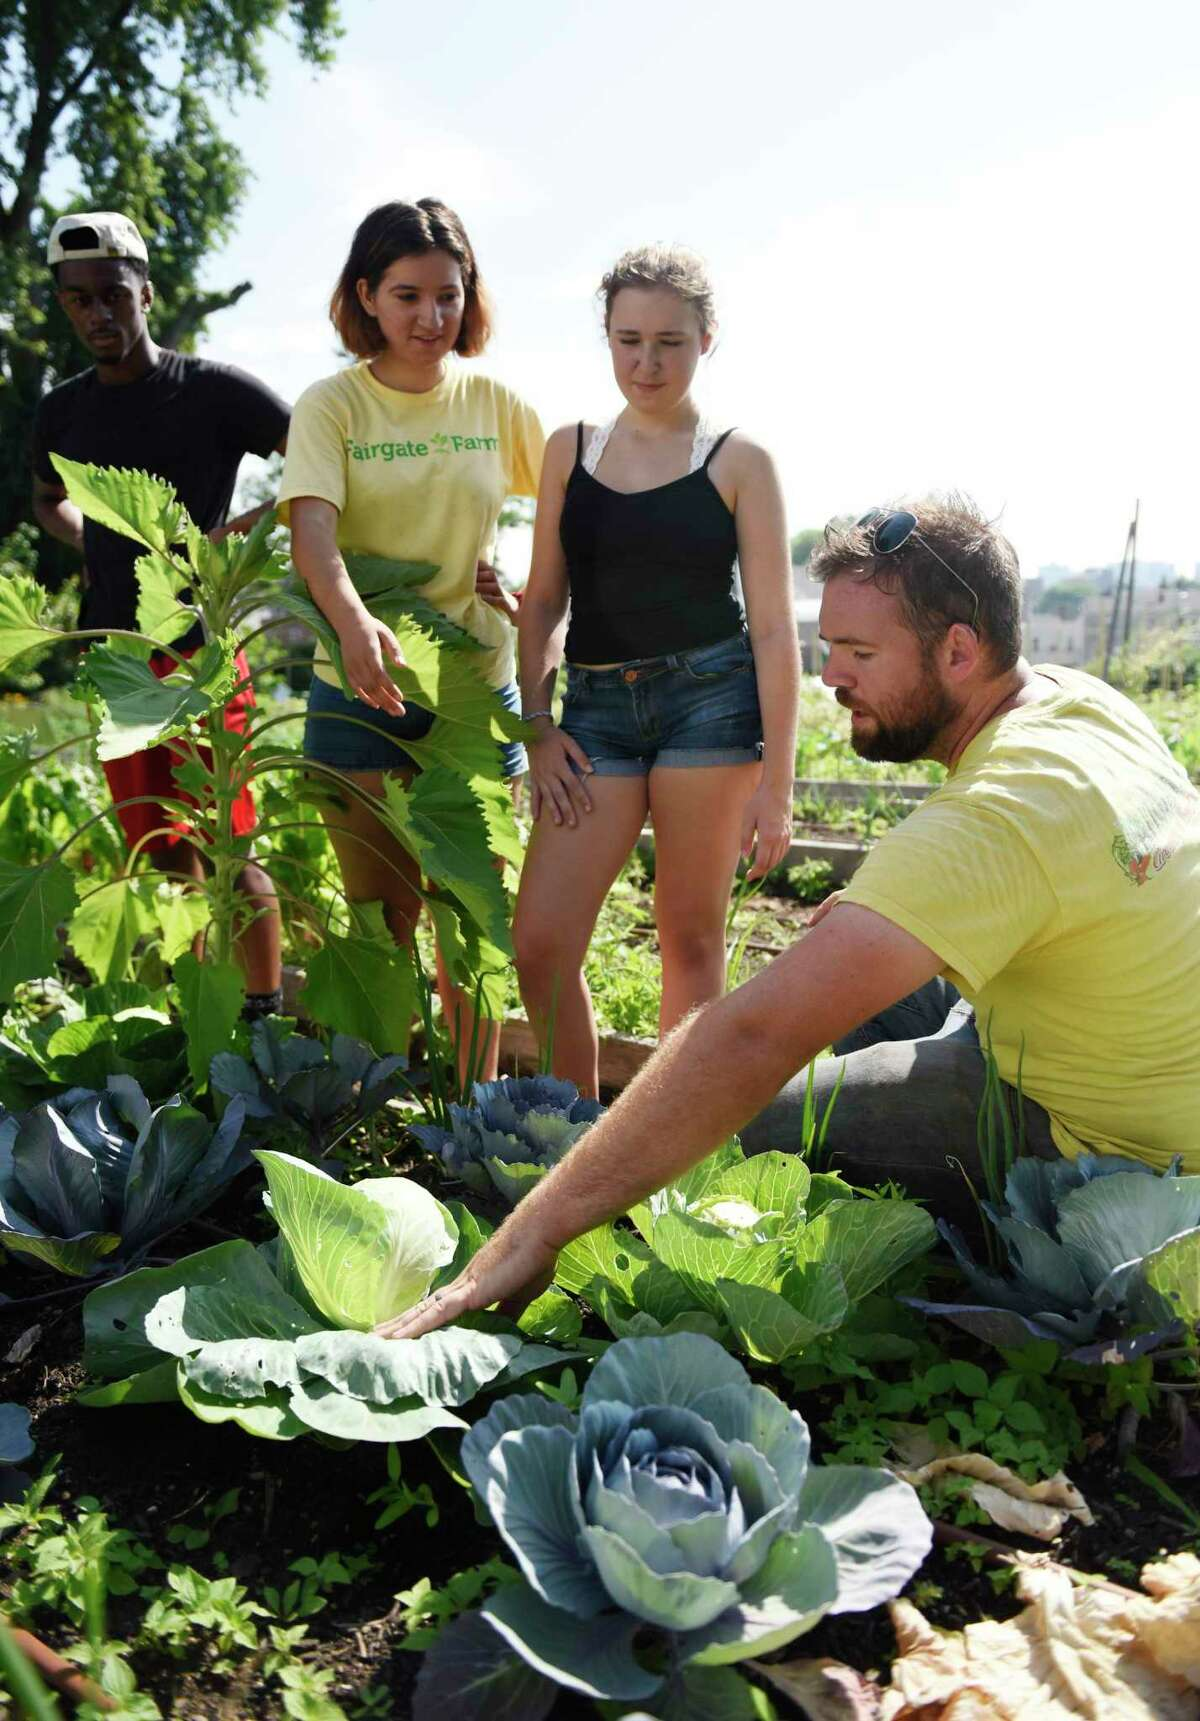 Stamford High School rising senior Darren Cole, left, Westhill High School rising senior Diana Kolaj, center, and Westhill High School rising junior Caroline Klumac gets tips on how to harvest cabbage from Farm Manager Pete Novajosky at Fairgate Farm in Stamford, Conn. Wednesday, July 17, 2019. Several students are working over the summer at Fairgate Farm to gain relevant work experience with their school studies.